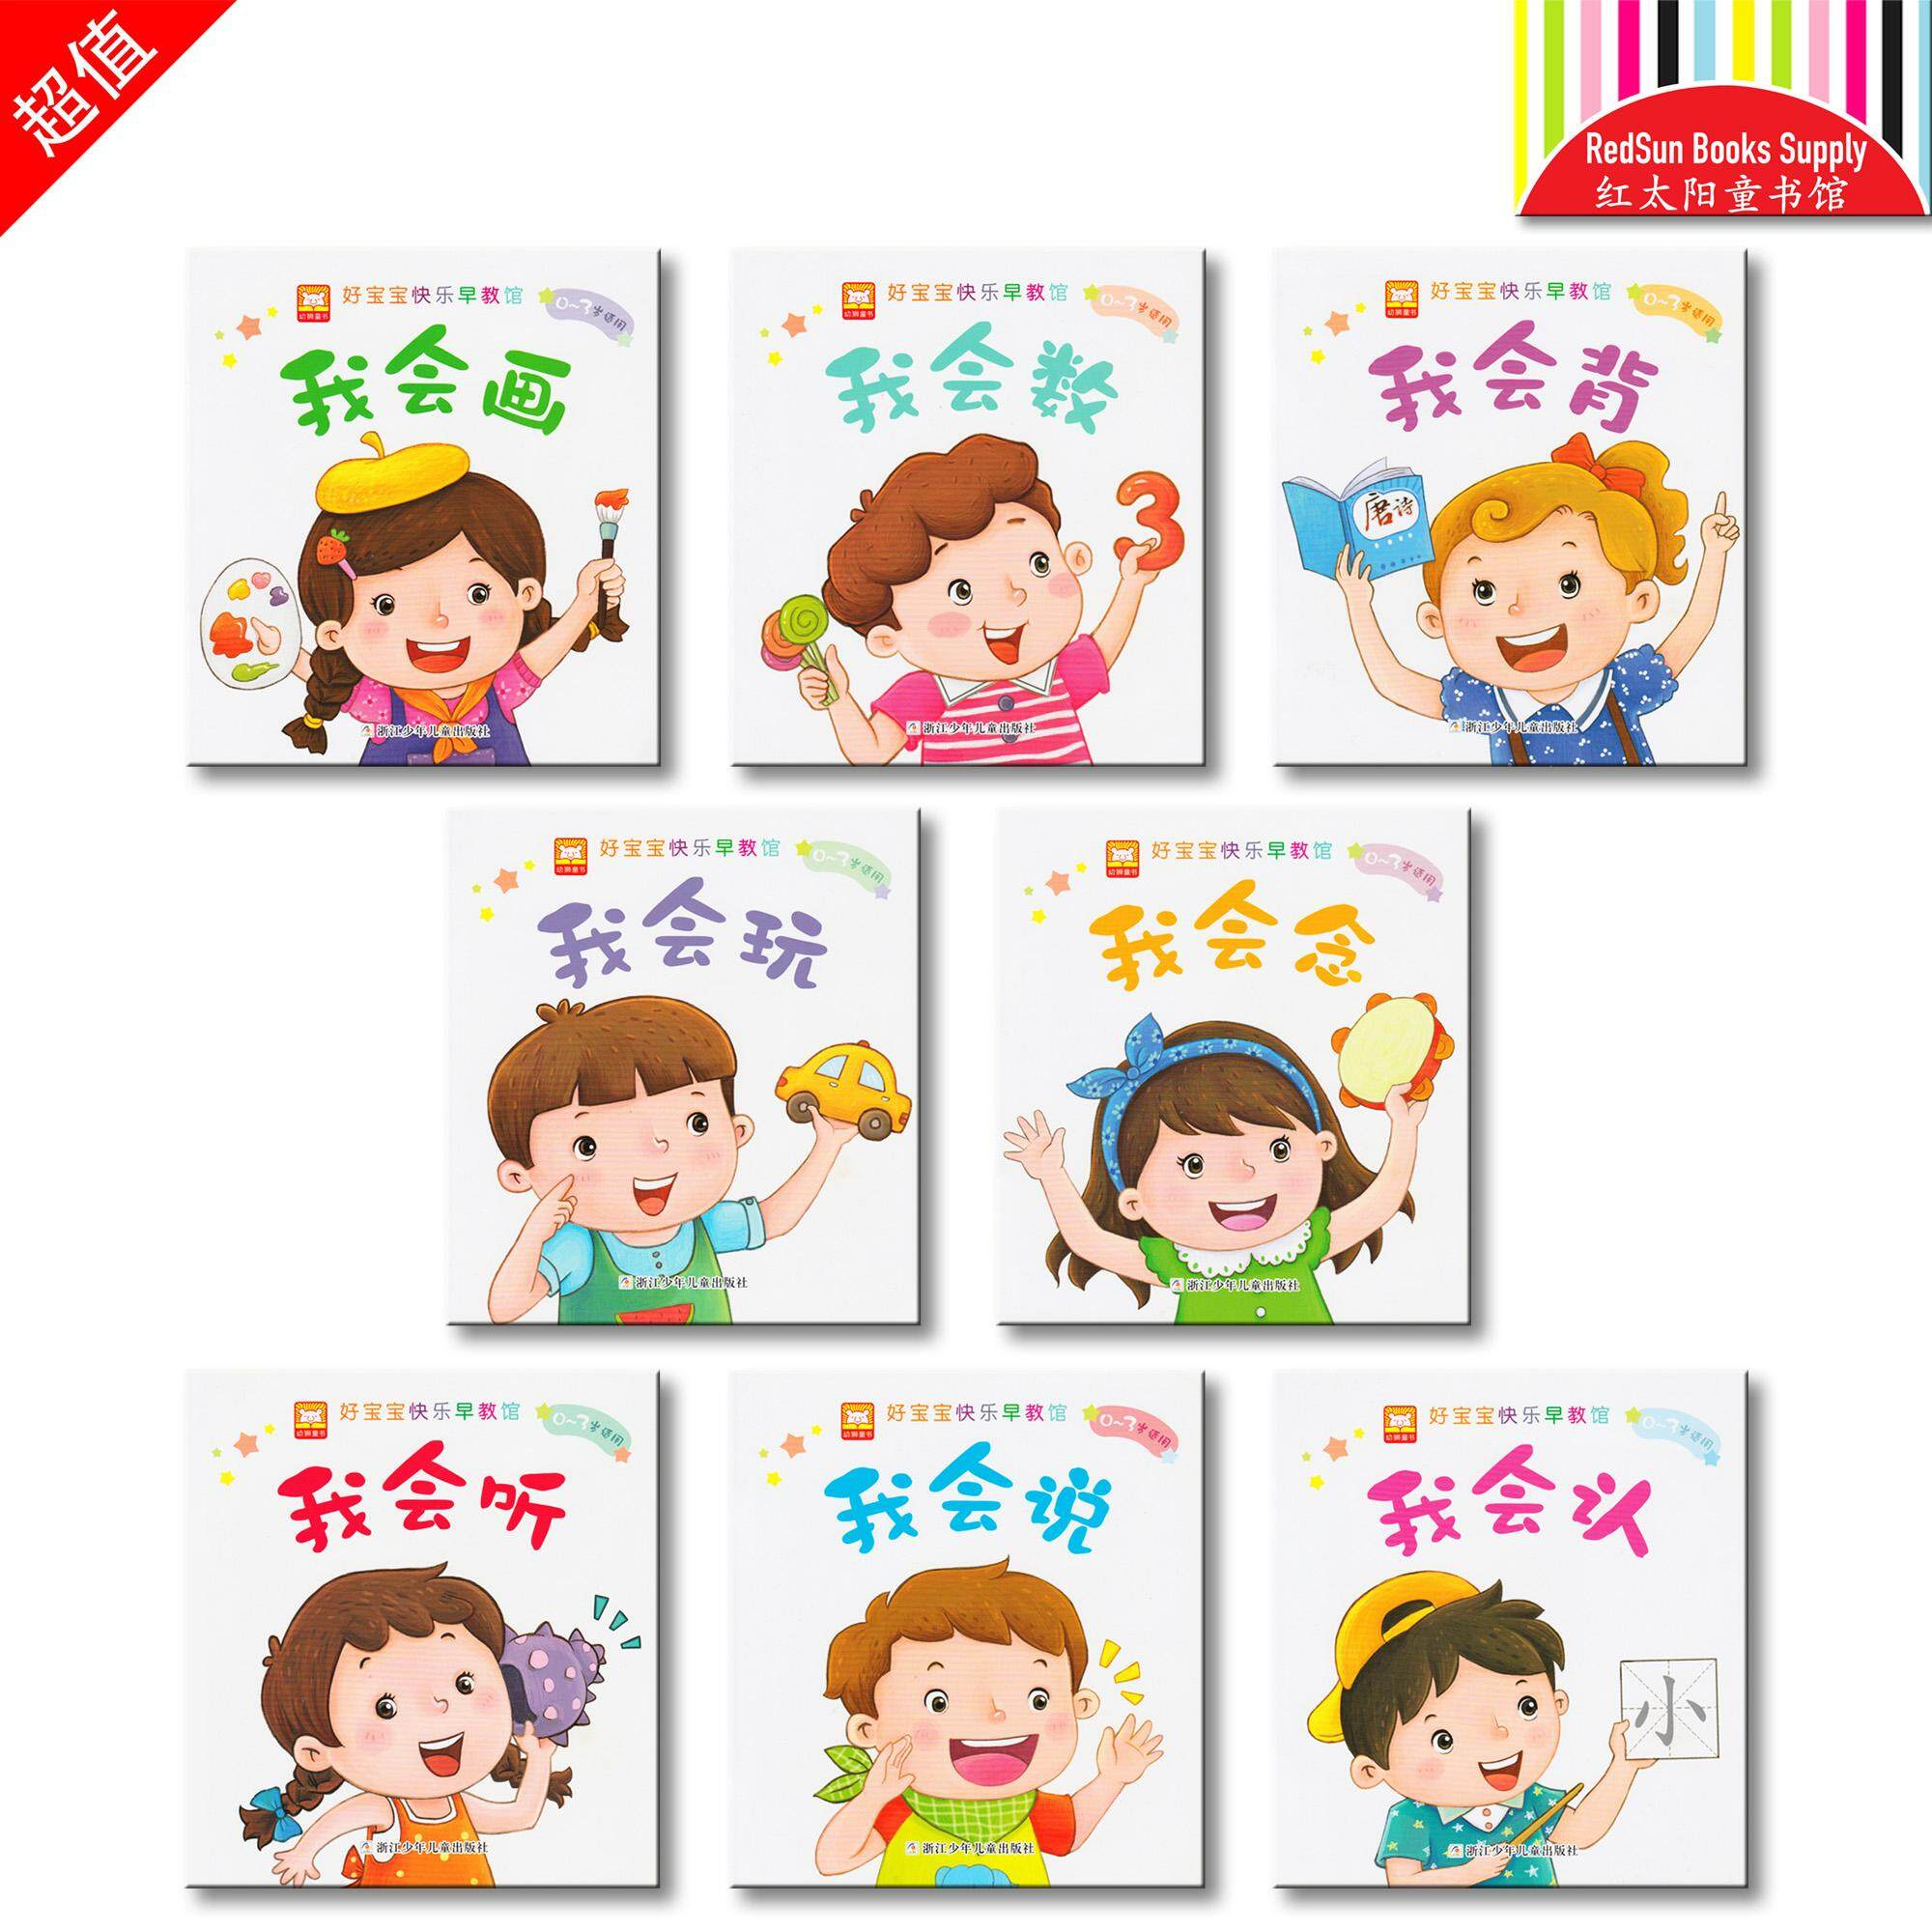 Combo Promotion Child Brain Development 10 Books + Children Enlightenment Cognitive 8 Books